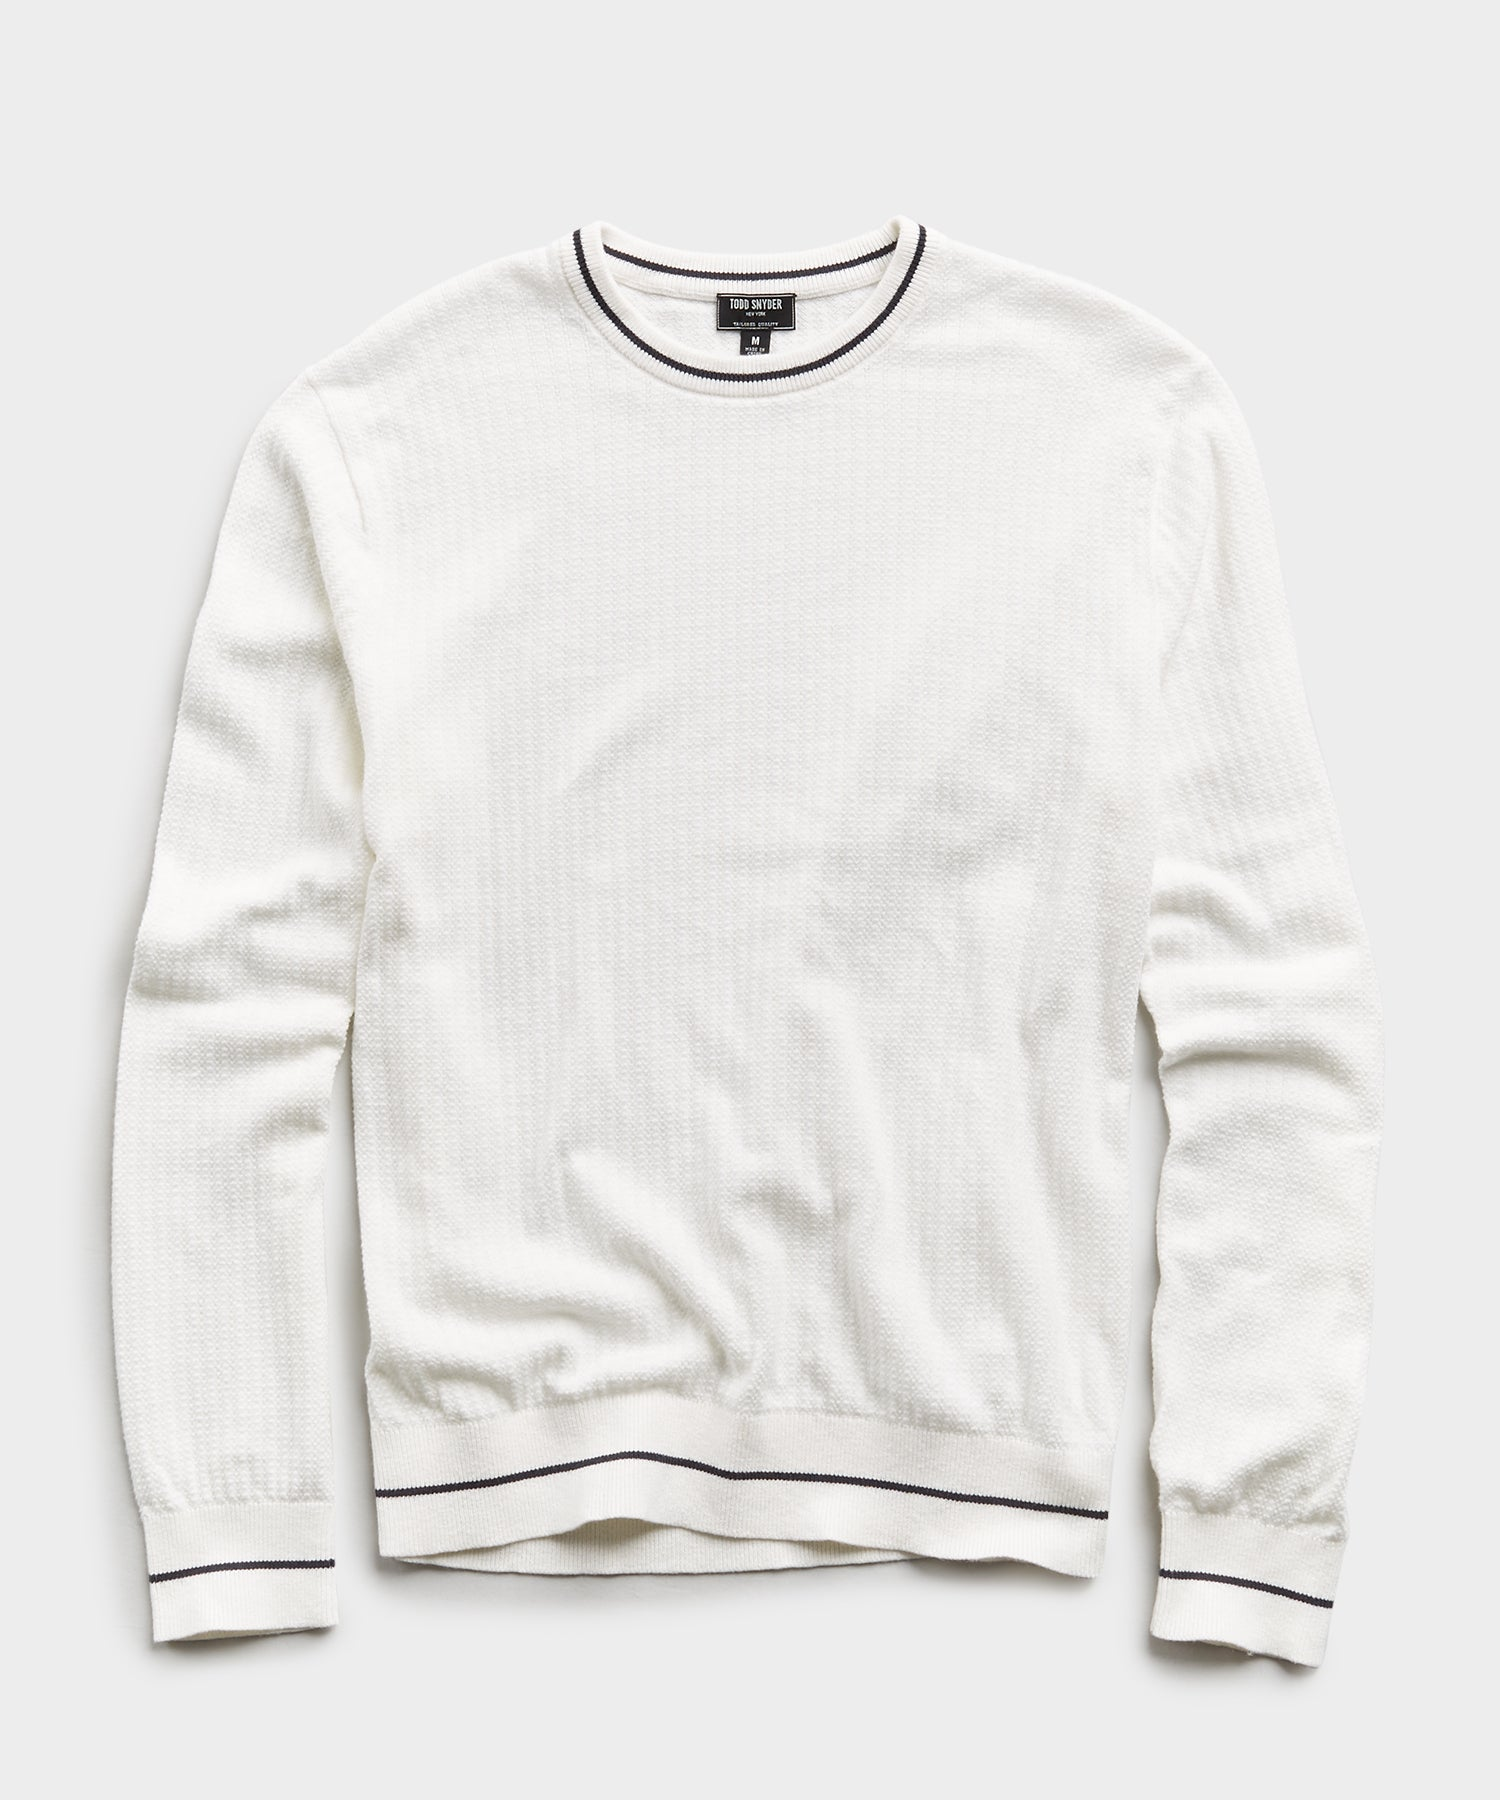 Textured Tipped Sweater in White